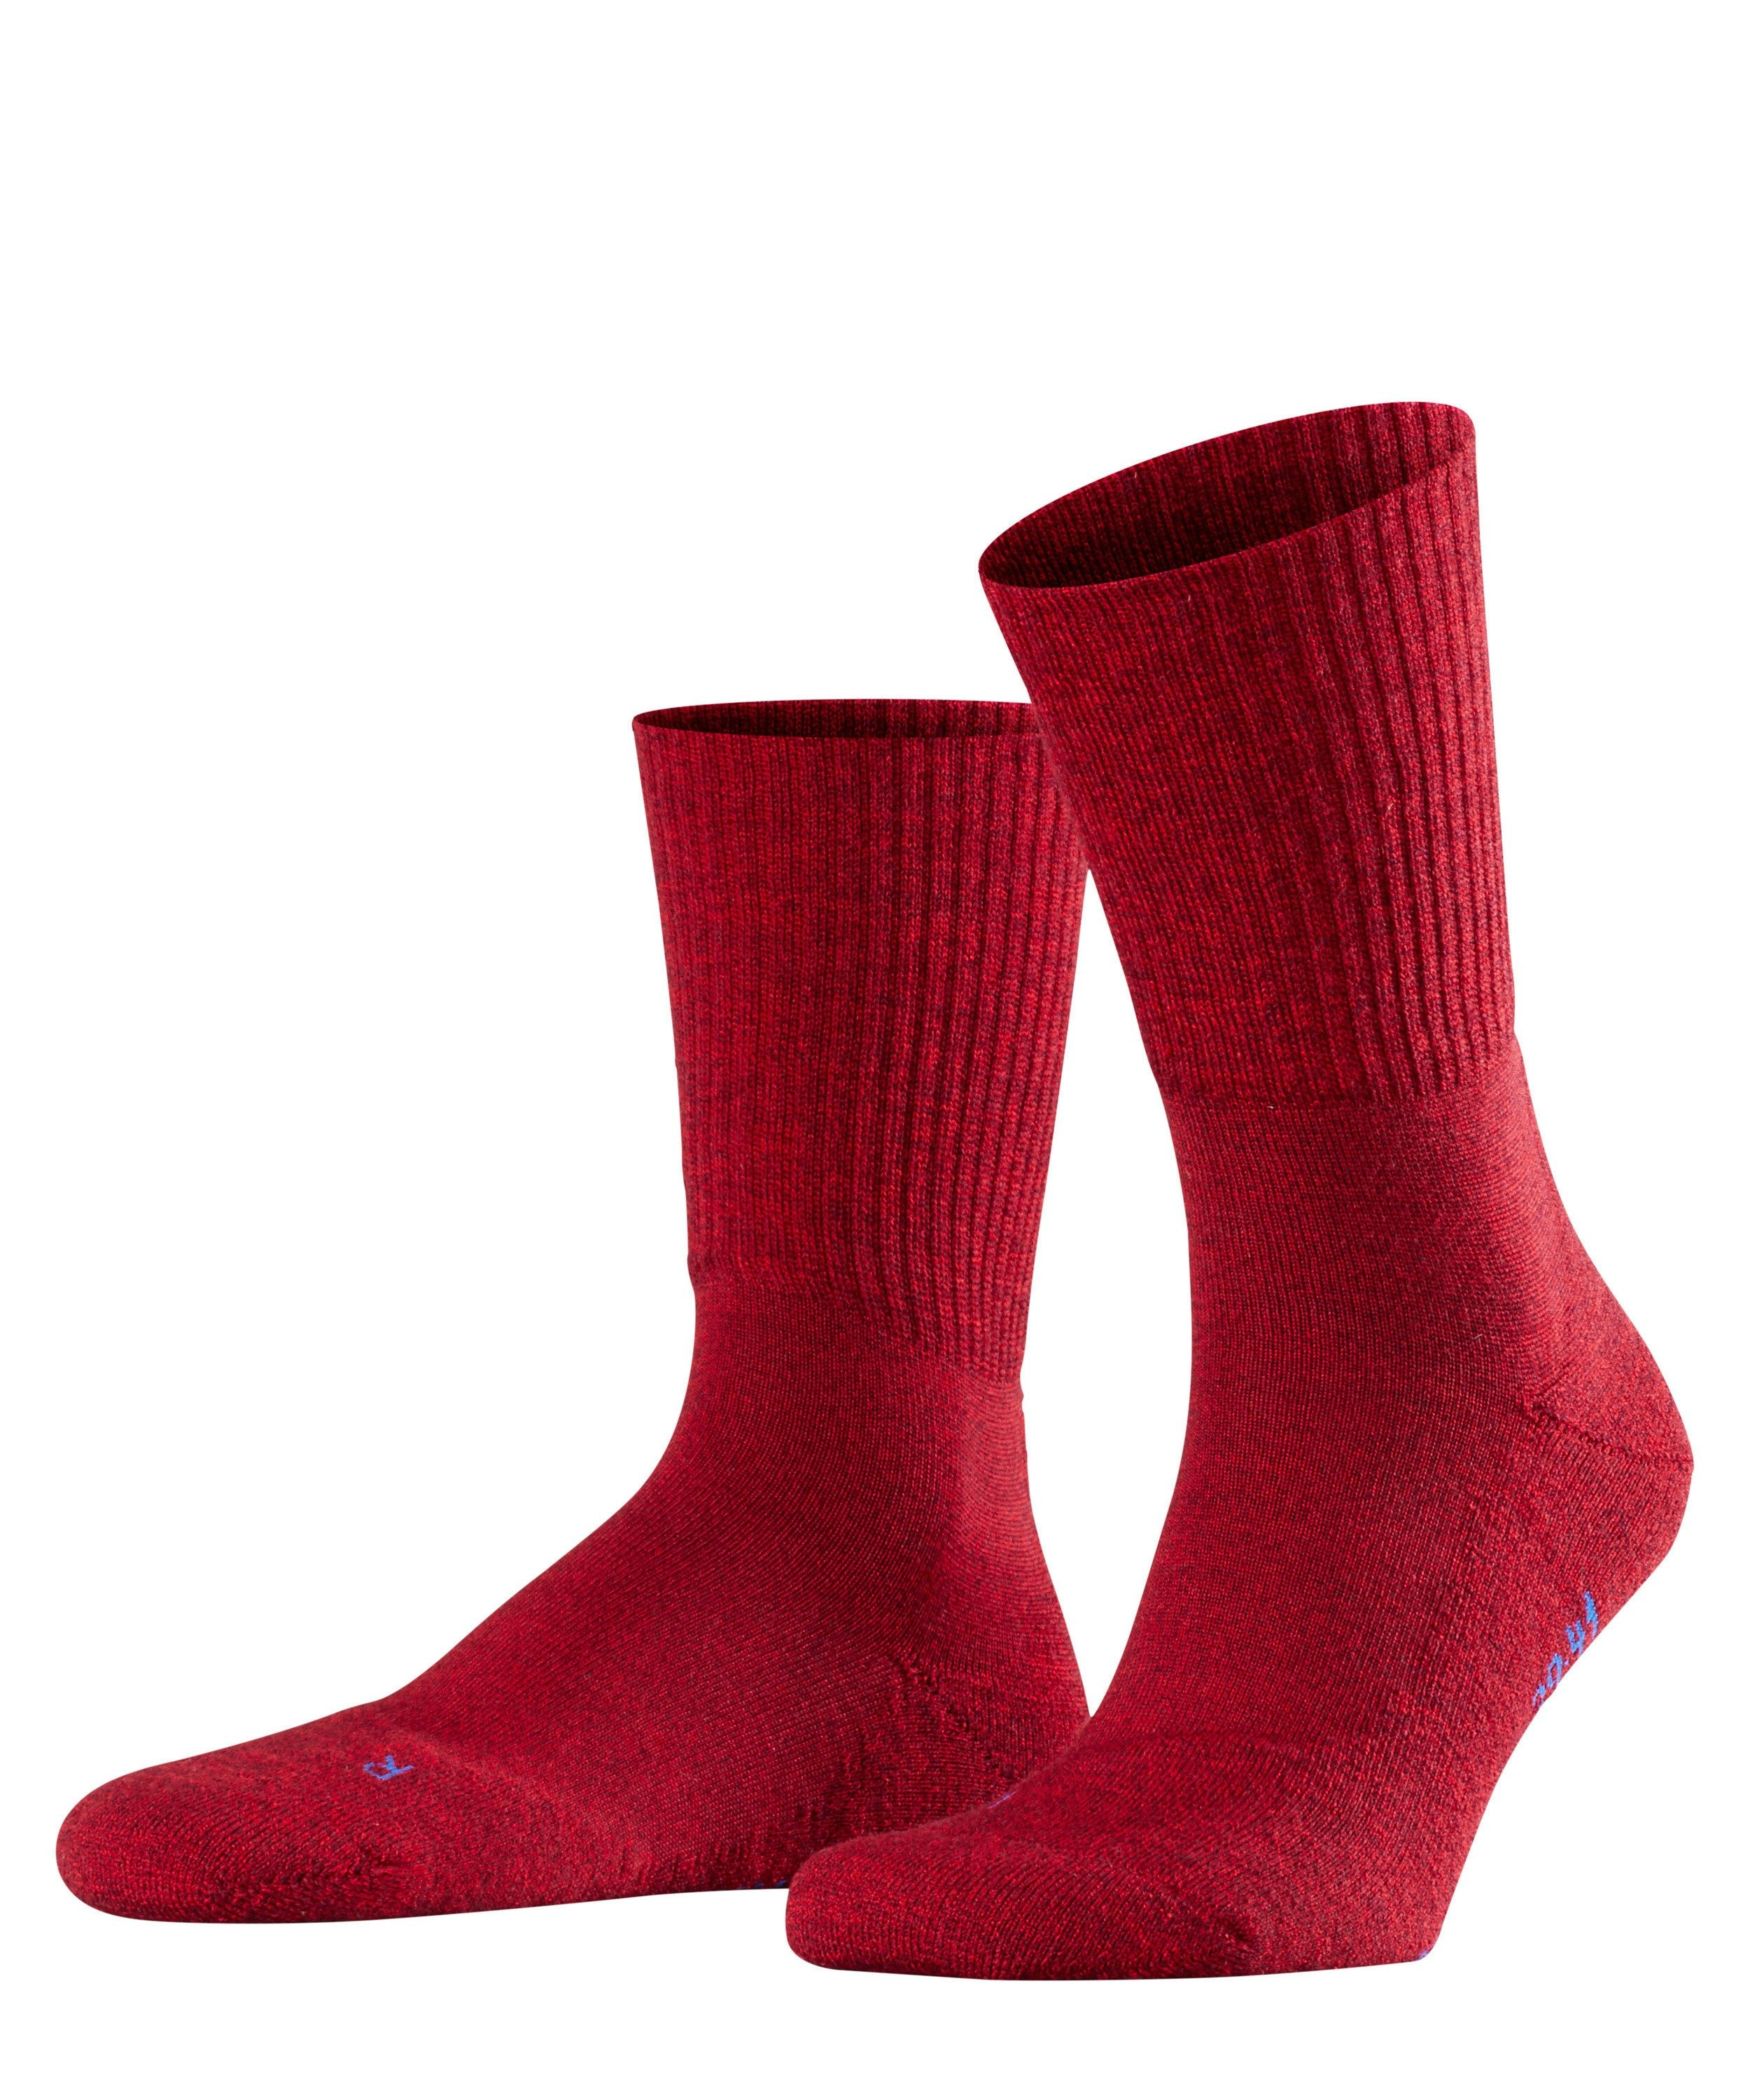 Chaussette de sport Unisexe - 66% Laine - Falke Men Walkie Light 16486 Rouge Scarlet 8280